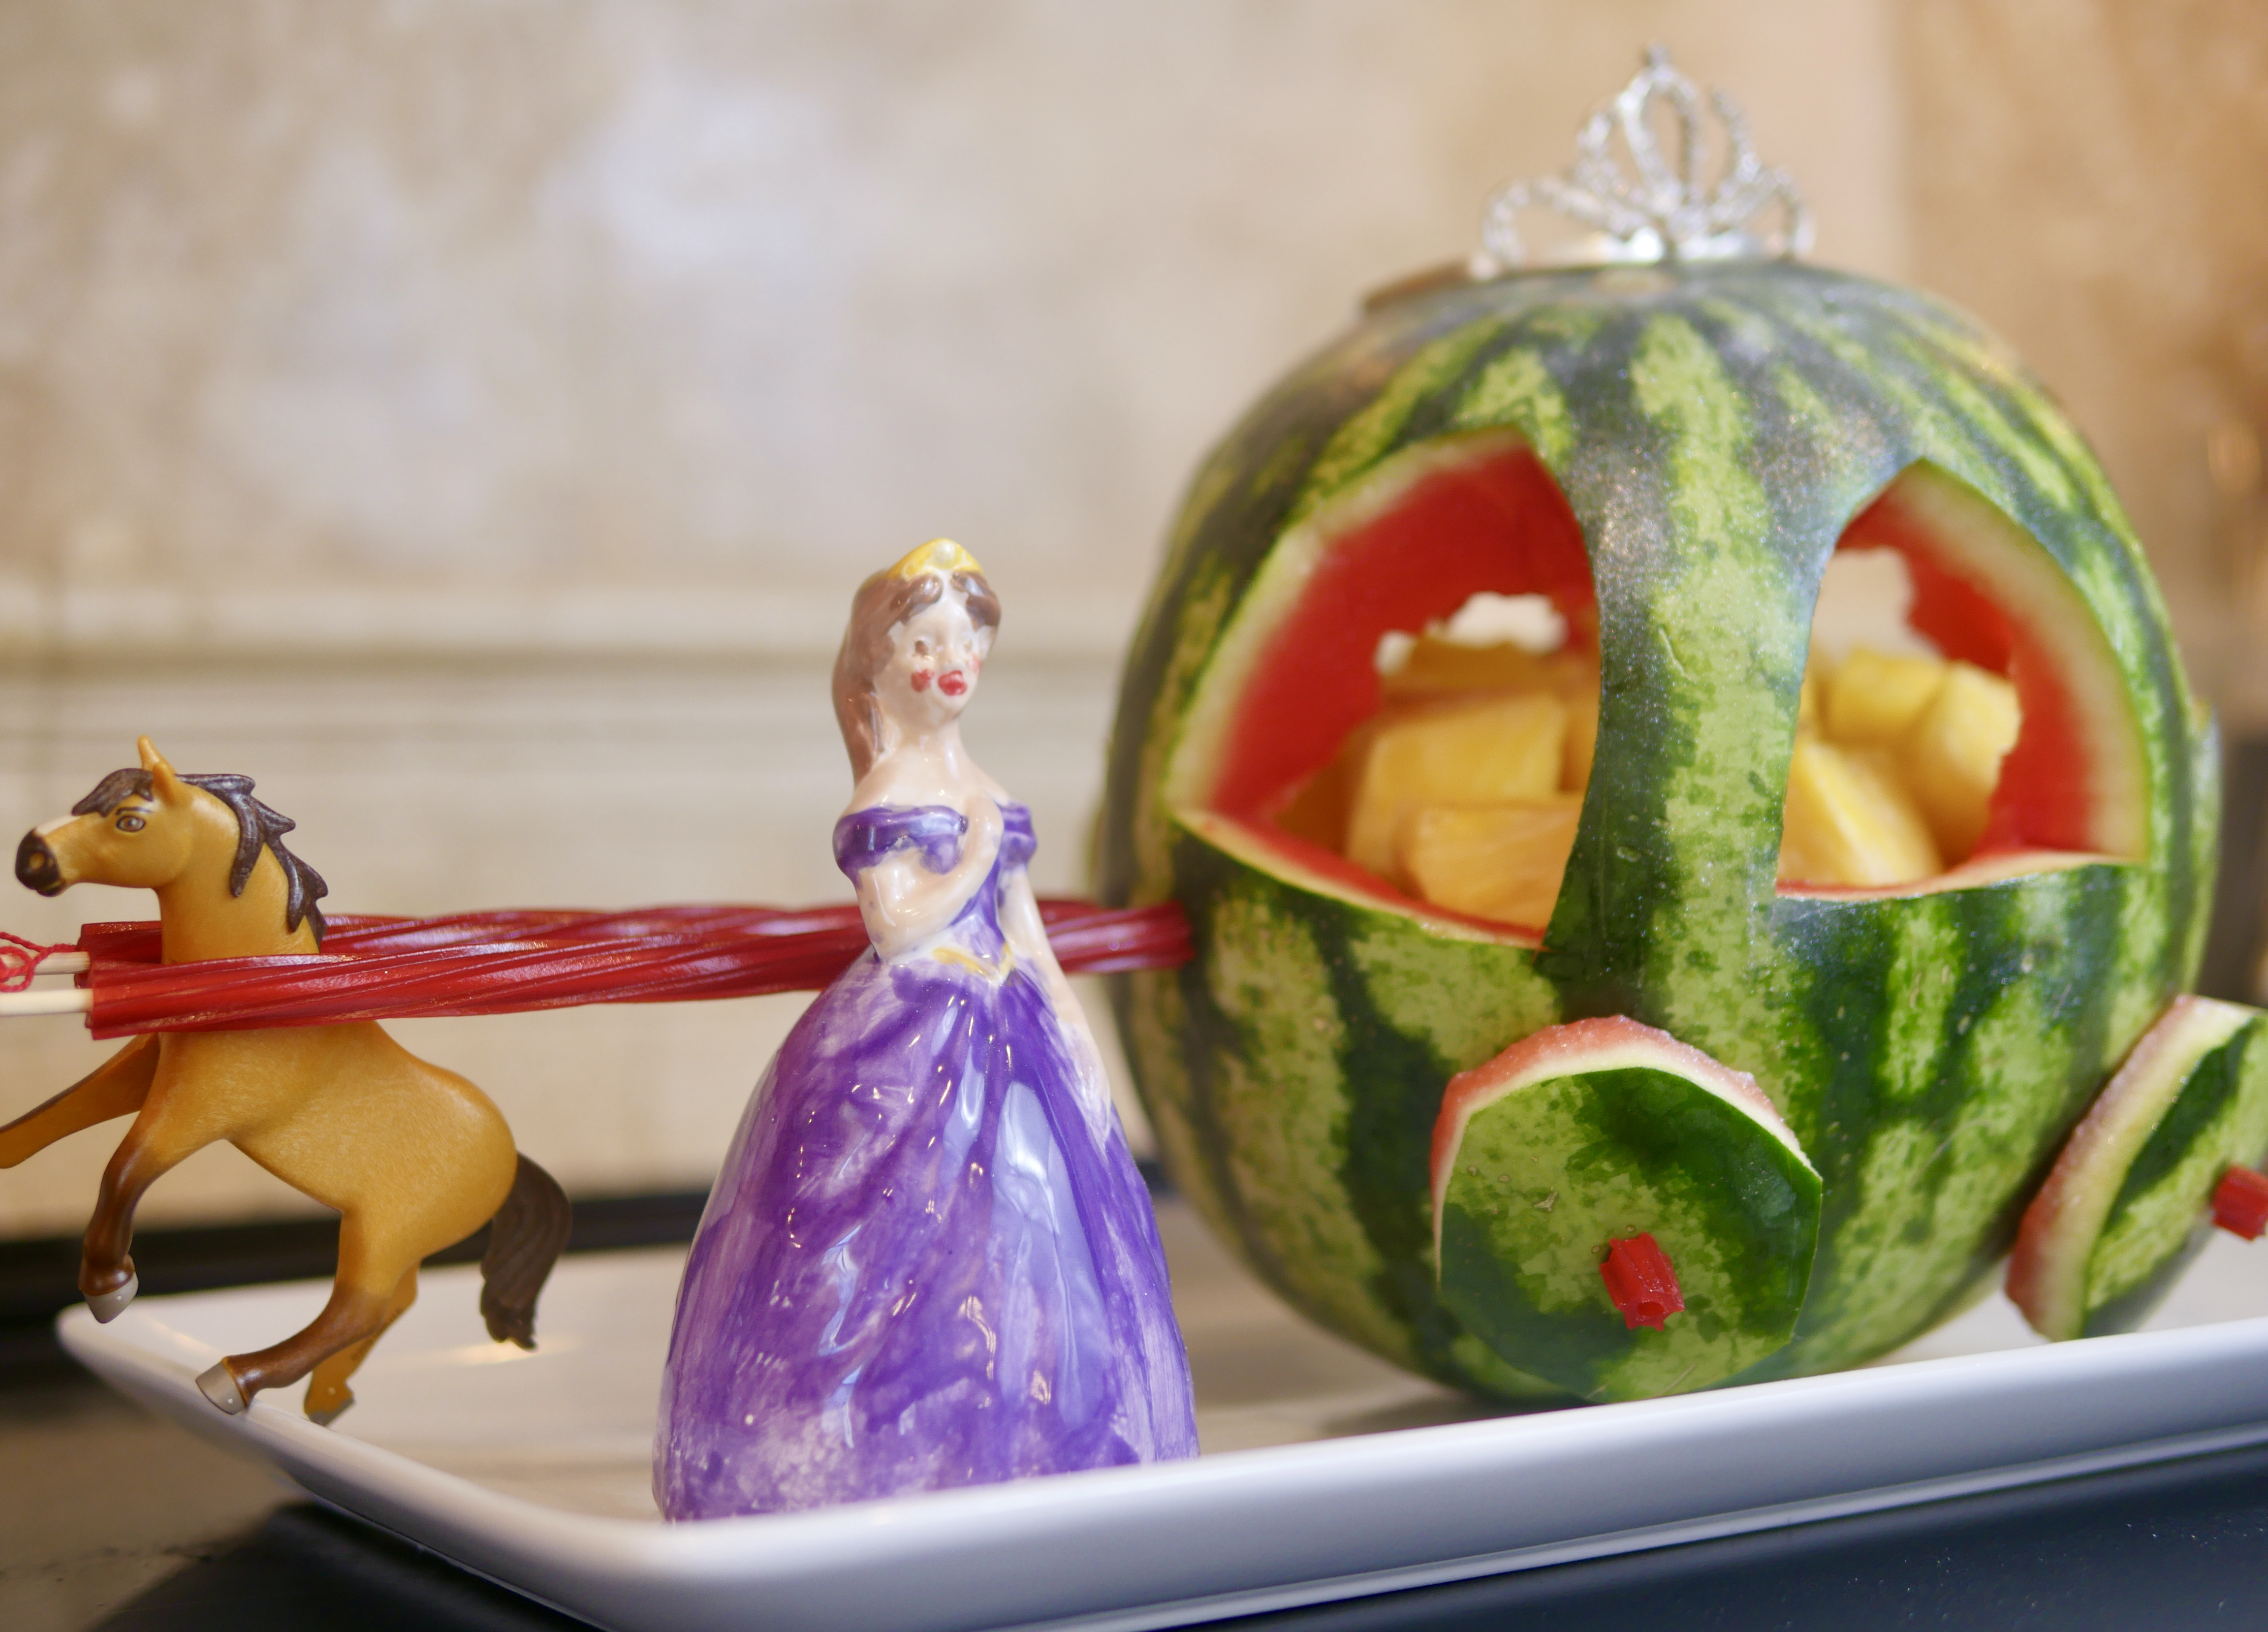 Fairy Godmother Watermelon Carriage Inspired by Disney+ 'Godmothered'